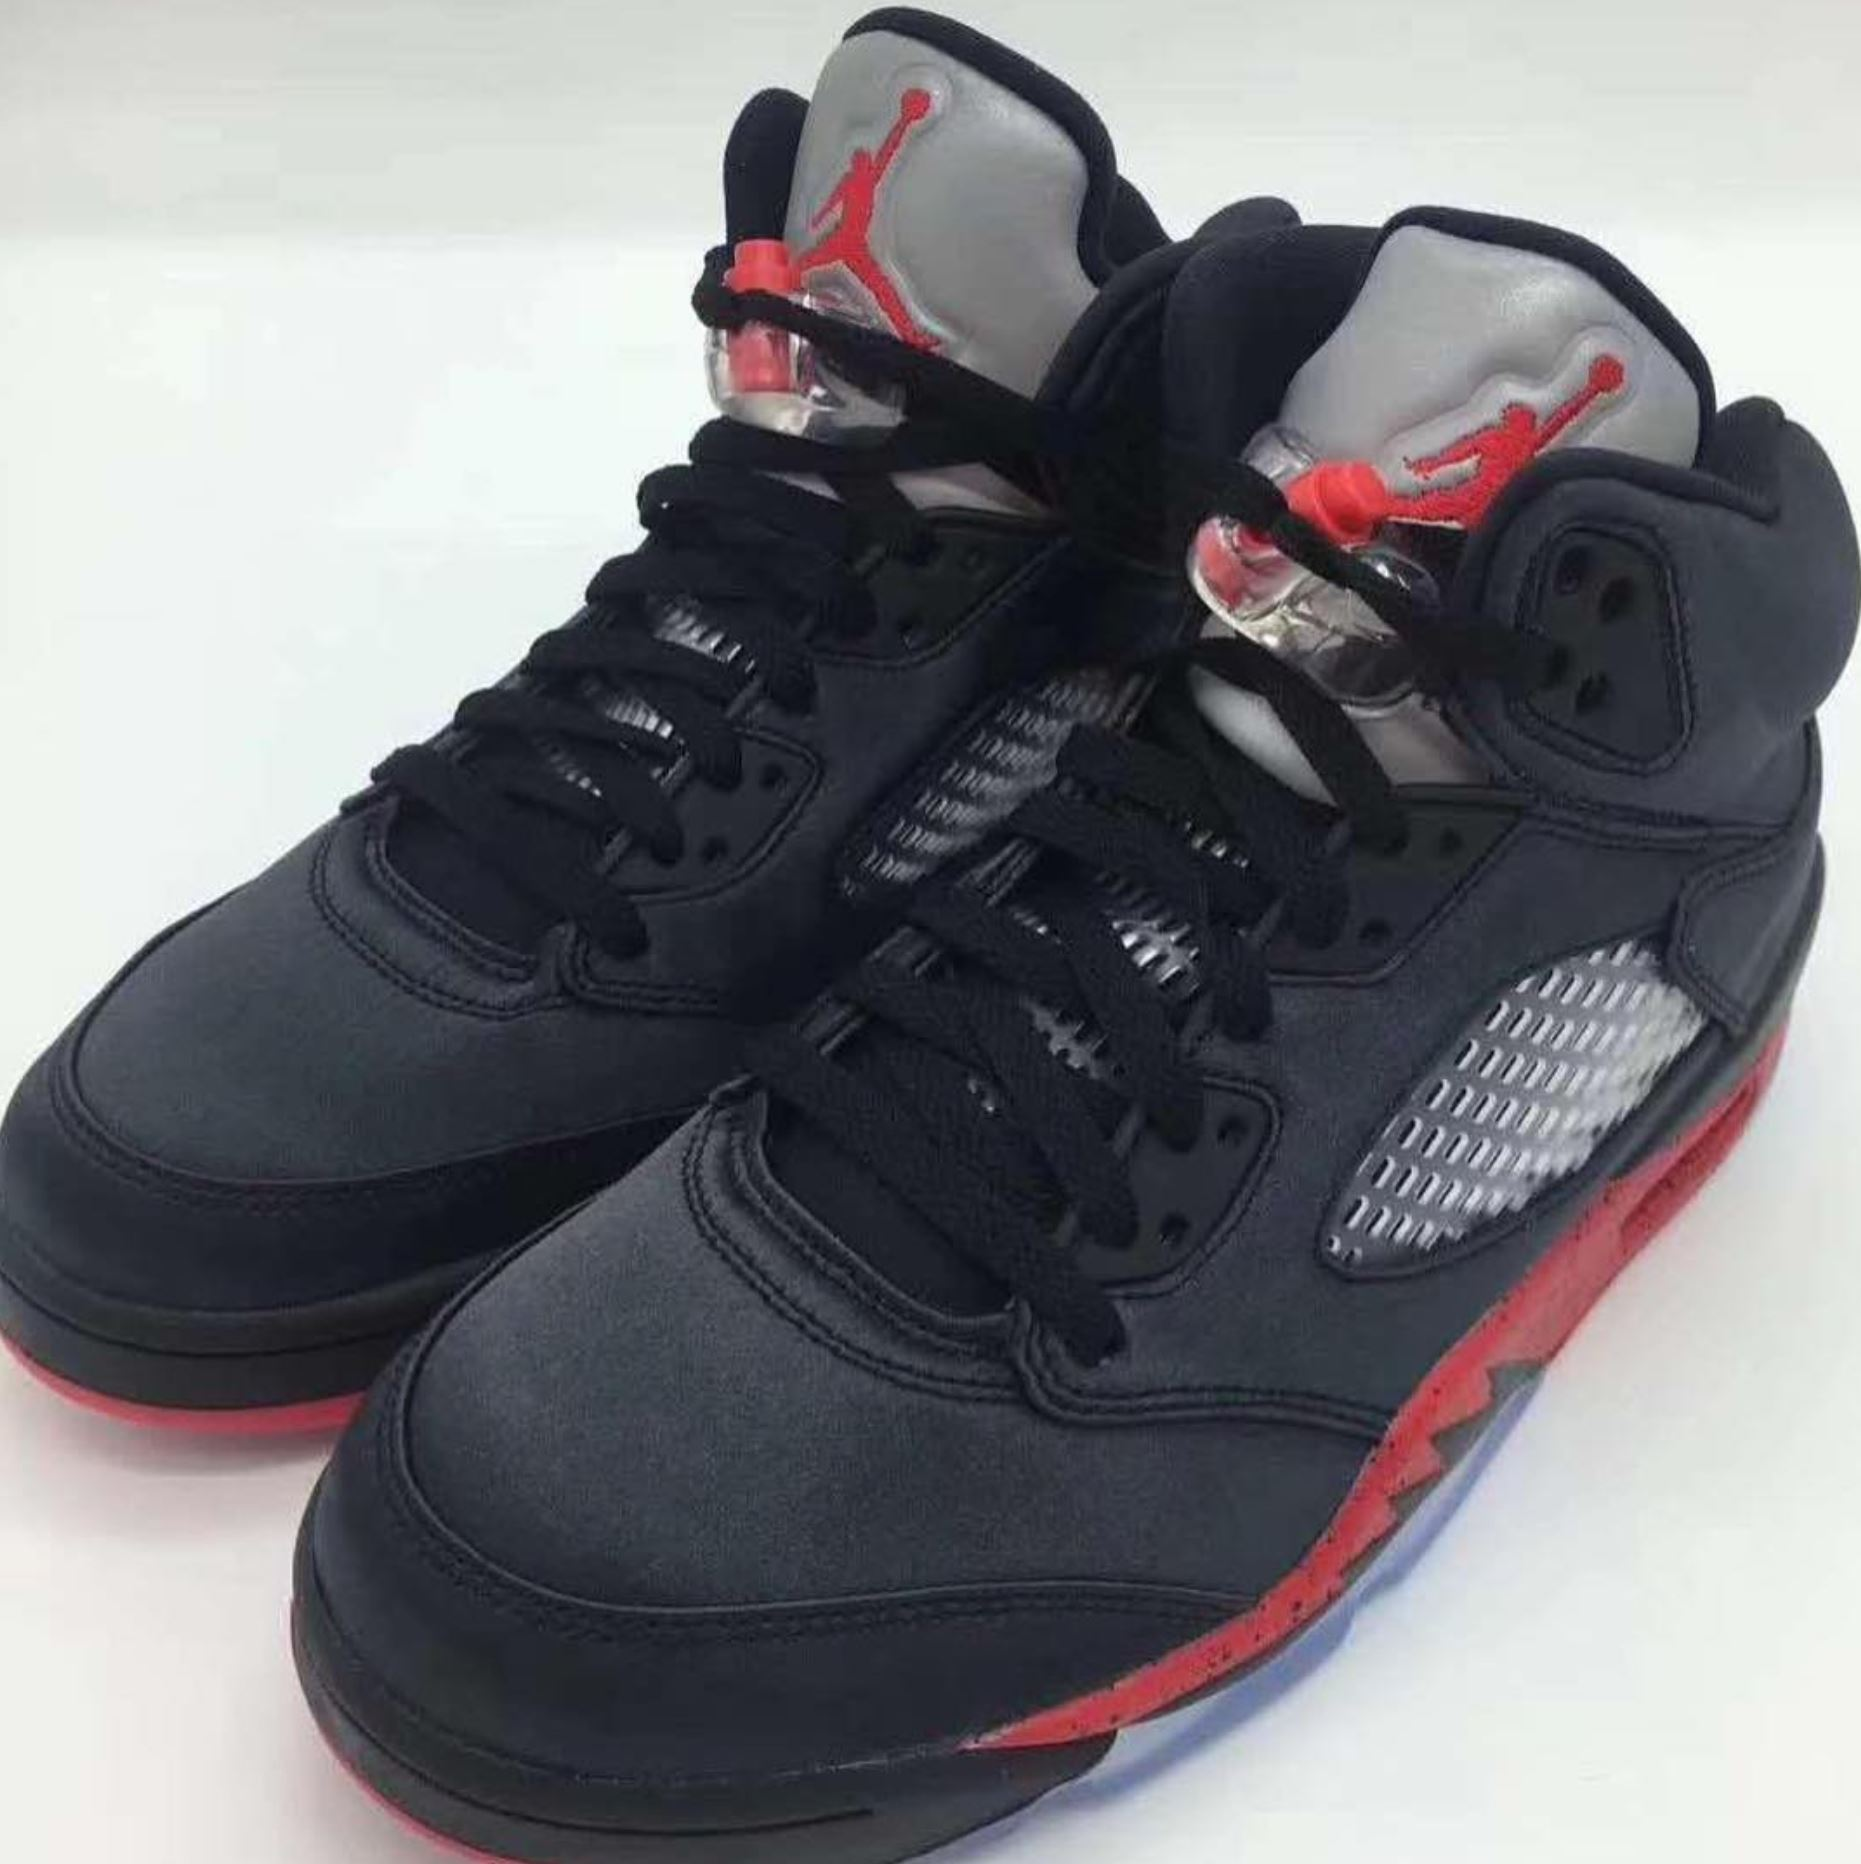 new style dc2e0 b0fc3 The Air Jordan 5 Satin 'Black/University Red' Will Drop on ...